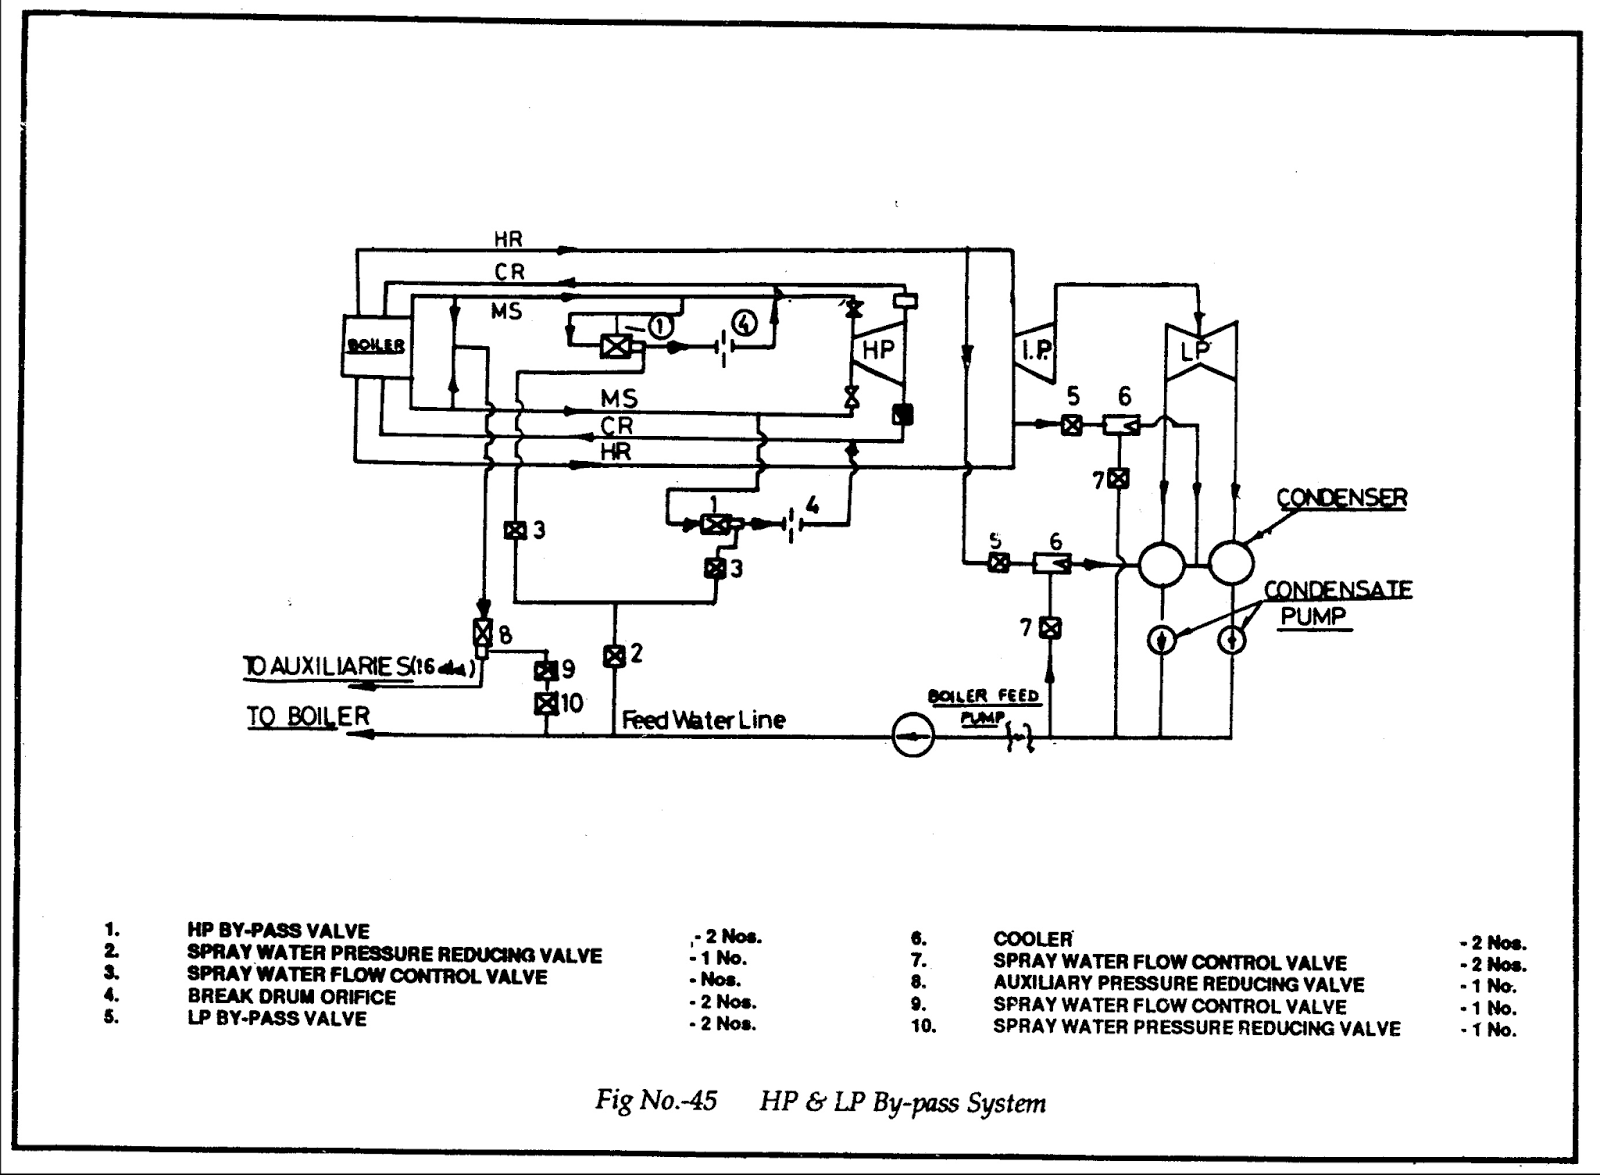 Hp Lp By Pass System All About Power Plant Wiring Diagram Air Pressor Hvac Superheat And Can Be Broadly Classified In Two Groups Ref Fig 45